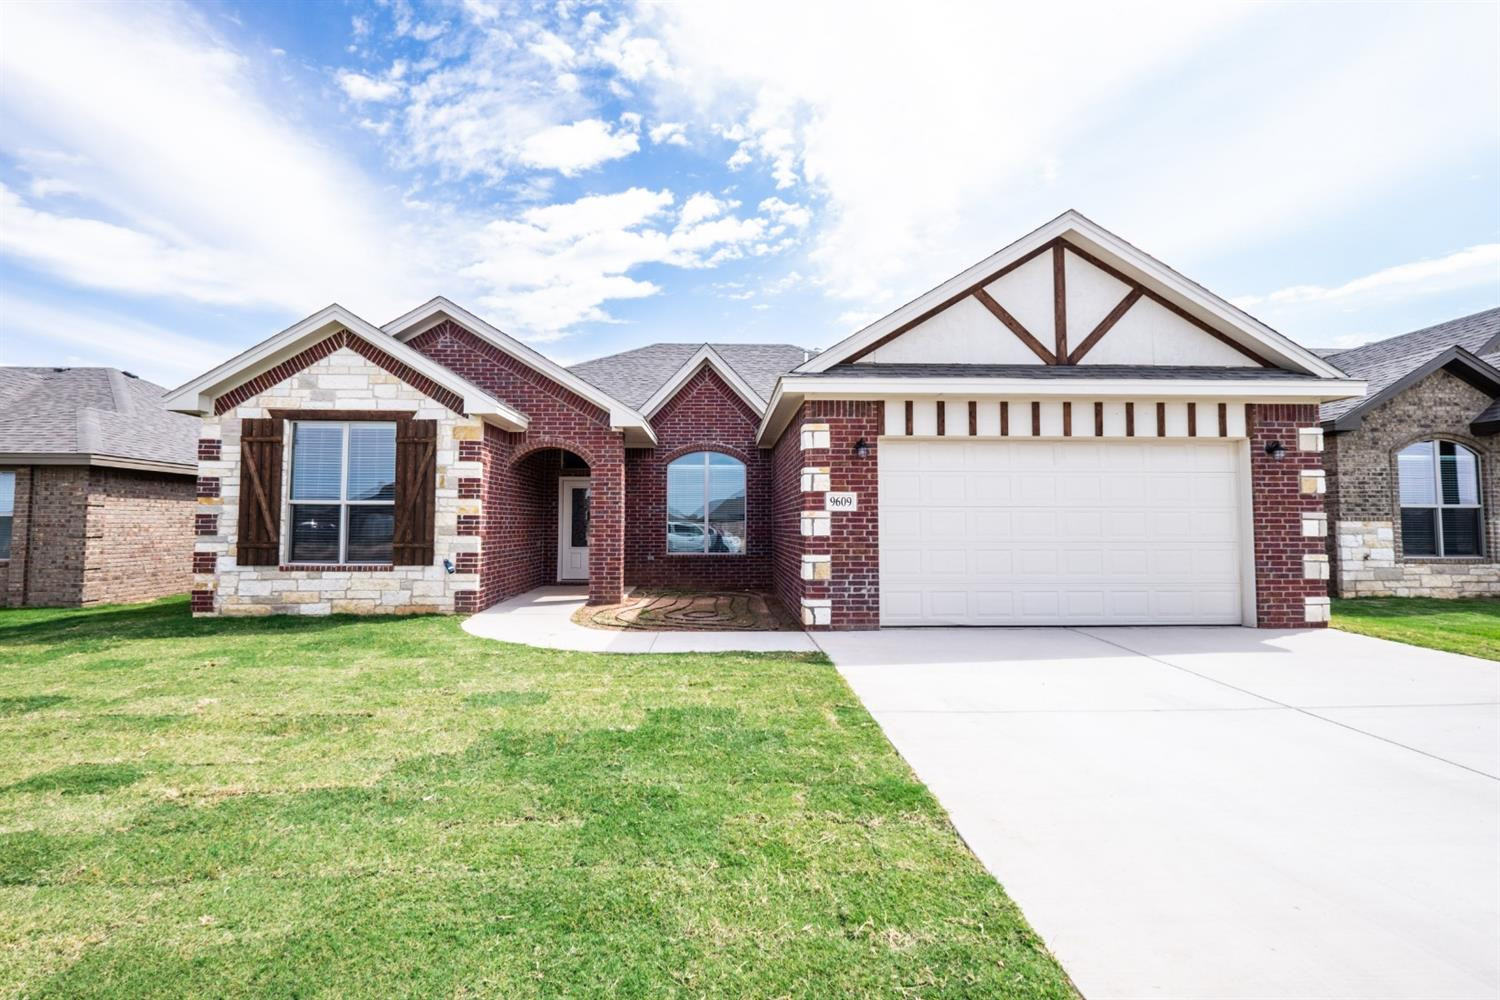 New construction 3 bedroom, 2 bathroom, and 2-car garage (rear entry) home in Day Estates neighborhood. Built for comfort and style, this beautiful brick and stone home has an open concept with 10' ceilings throughout entire house. Located in Frienship ISD, making it a great location! Special features include: double ovens in kitchen, electric fireplace with oak mantle, granite countertops throughout, walk-in closet in Master bedroom, a jet tub in master bath, and vinyl plank flooring in living room and kitchen.